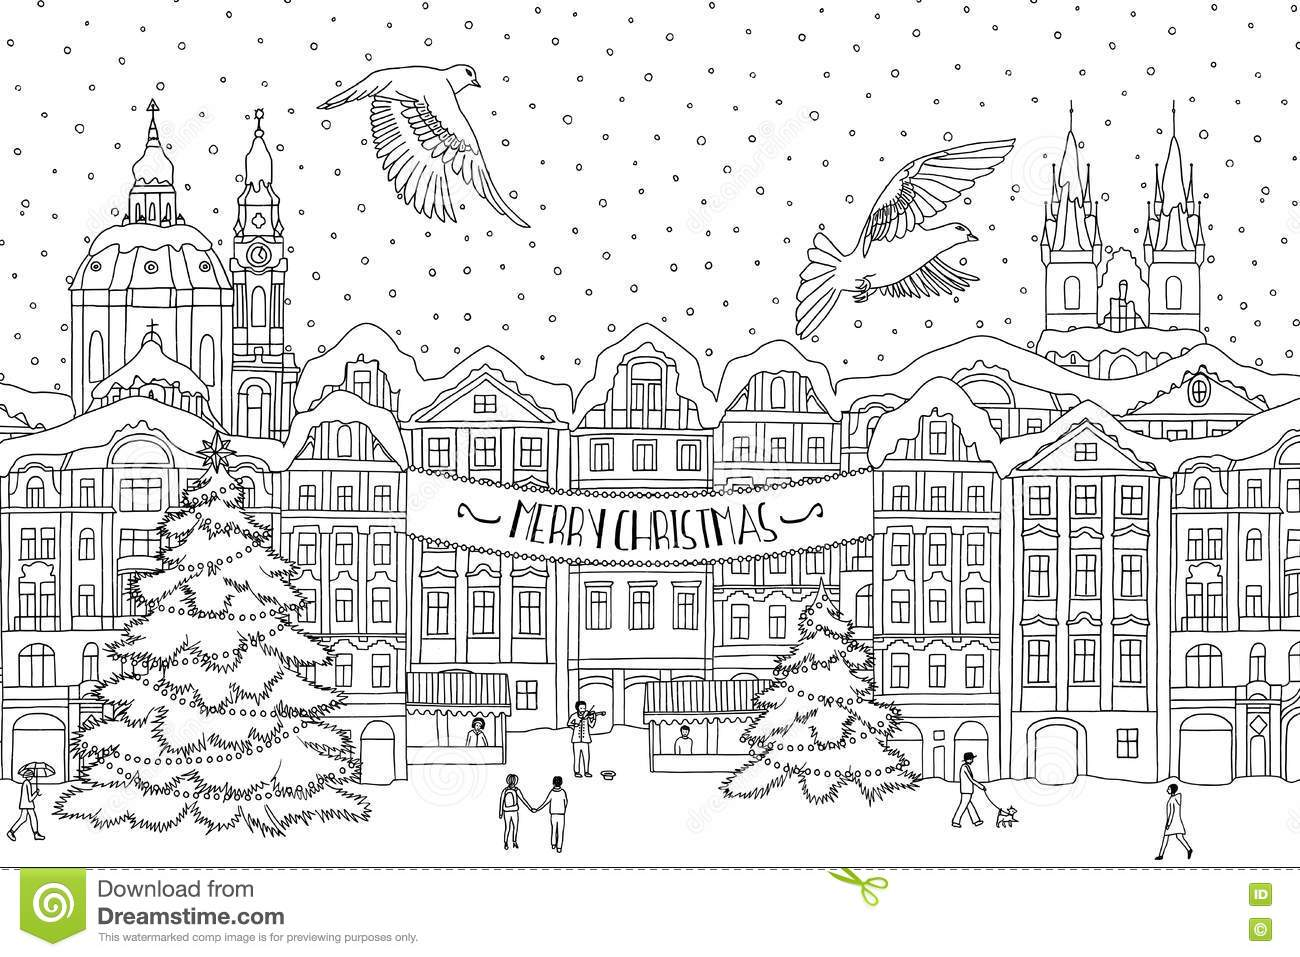 hand drawn black and white illustration of a city in winter at